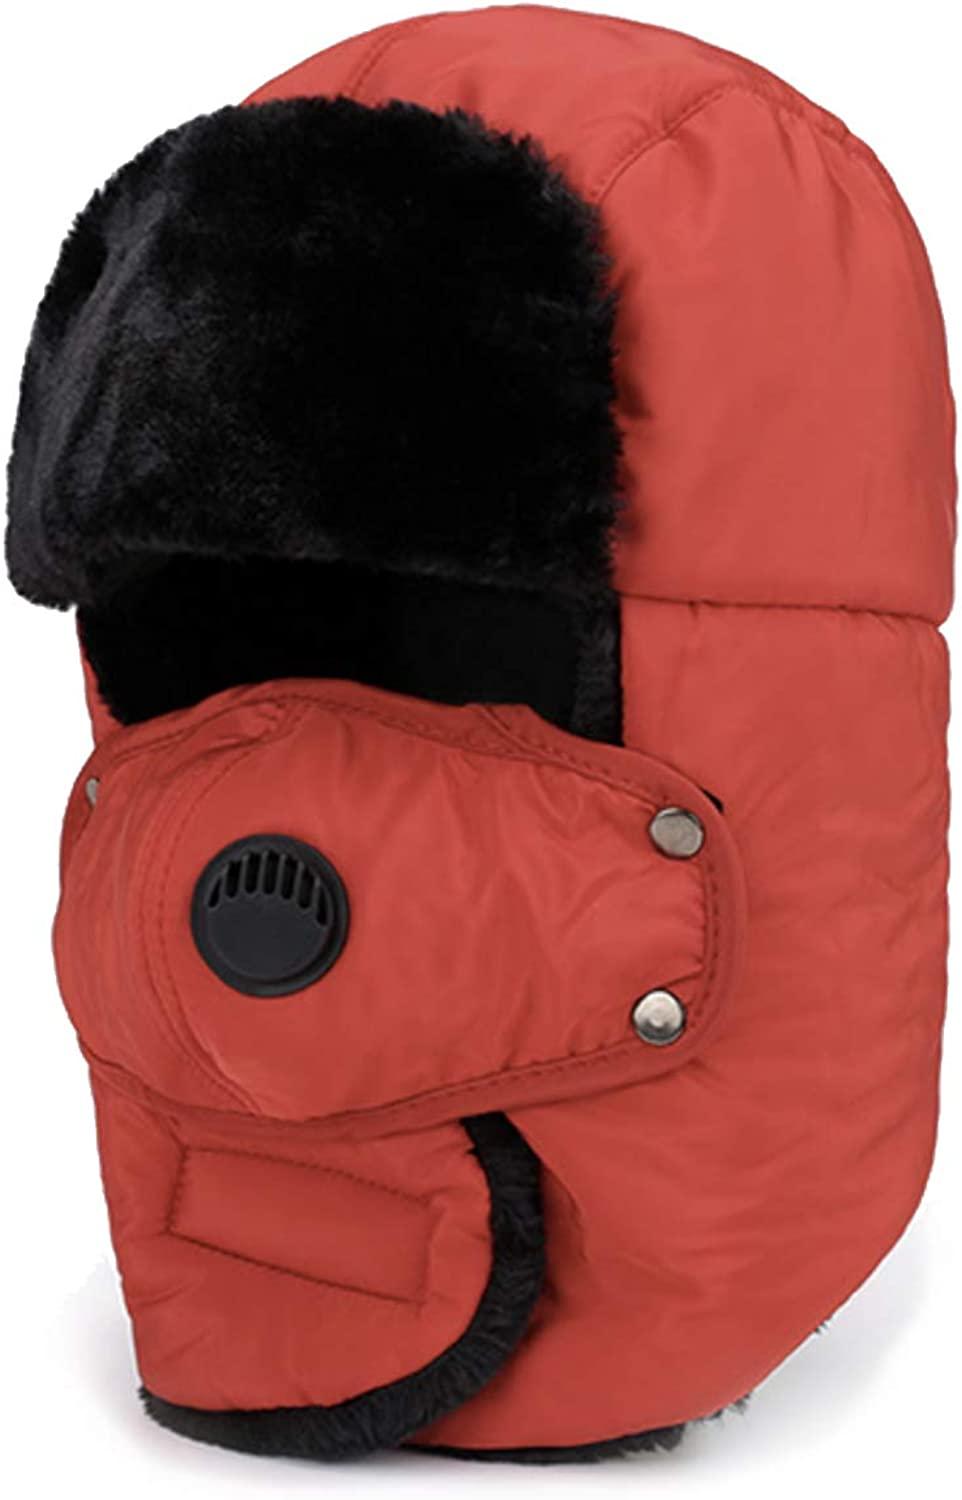 Outlet ☆ Free Shipping HOPENE Trapper Hat Full Coverage Windproof with Mask Hats Ranking TOP10 Winter